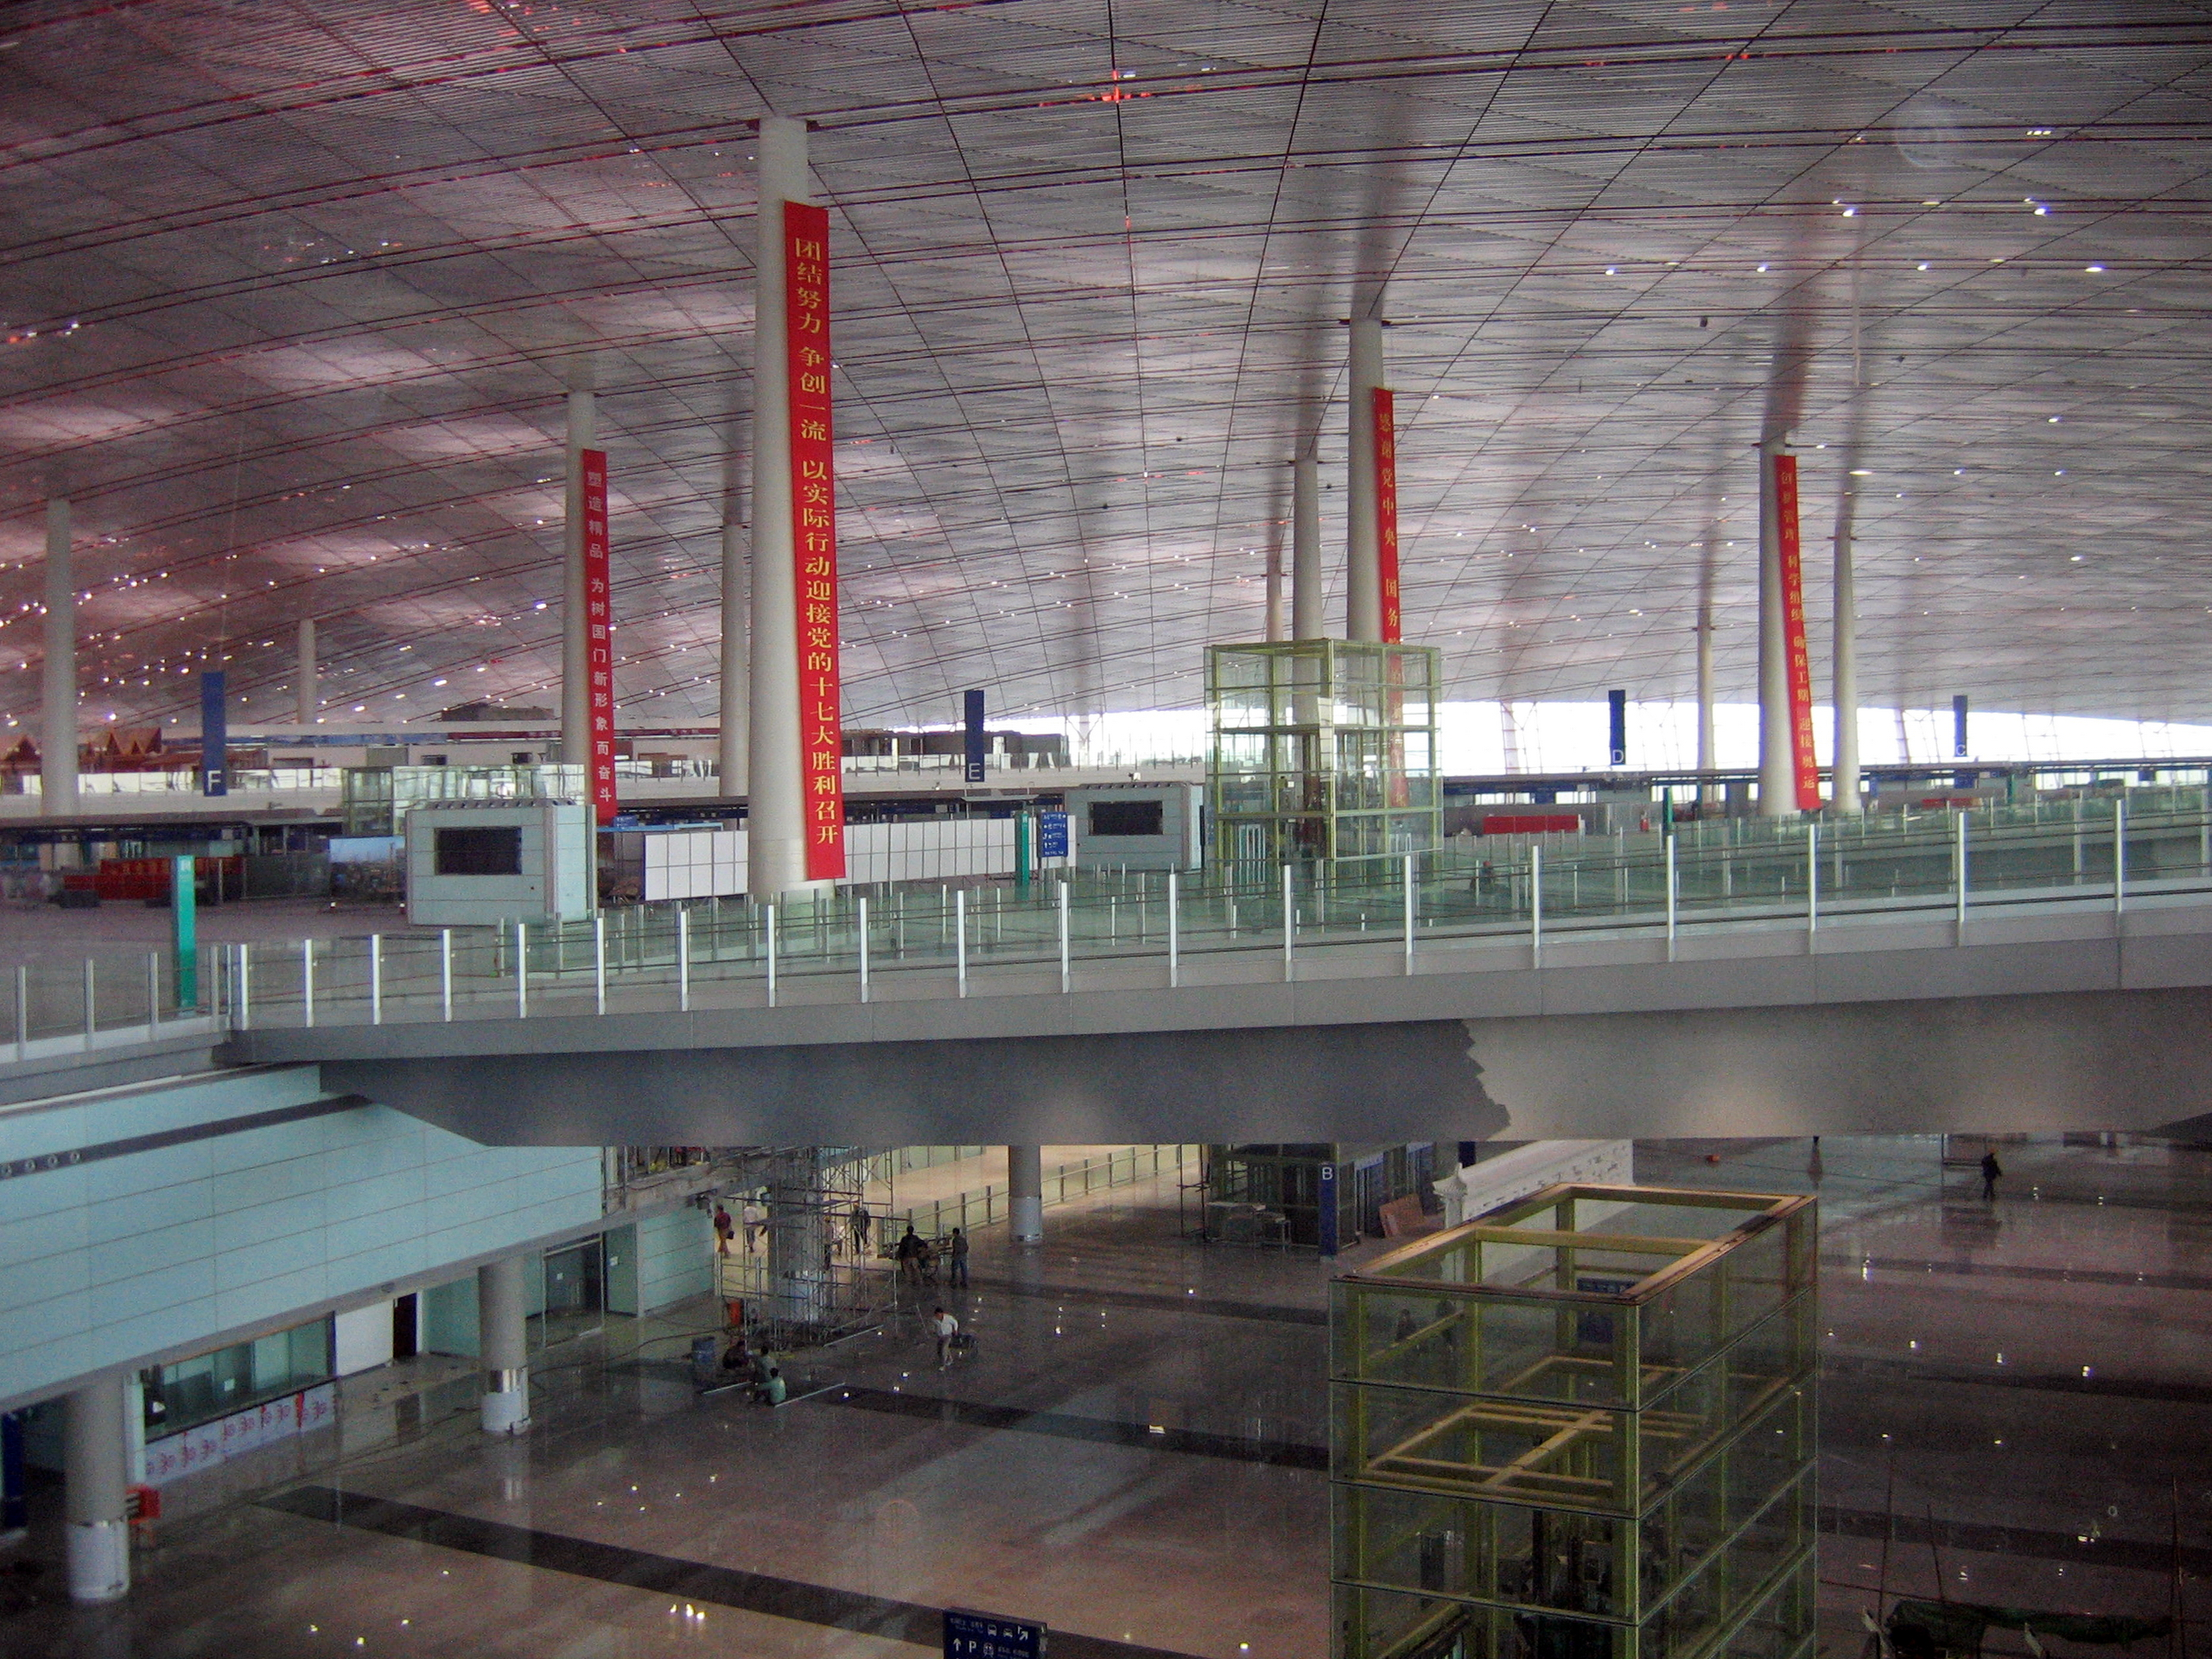 Beijing Airport Images File:beijing Capital Airport